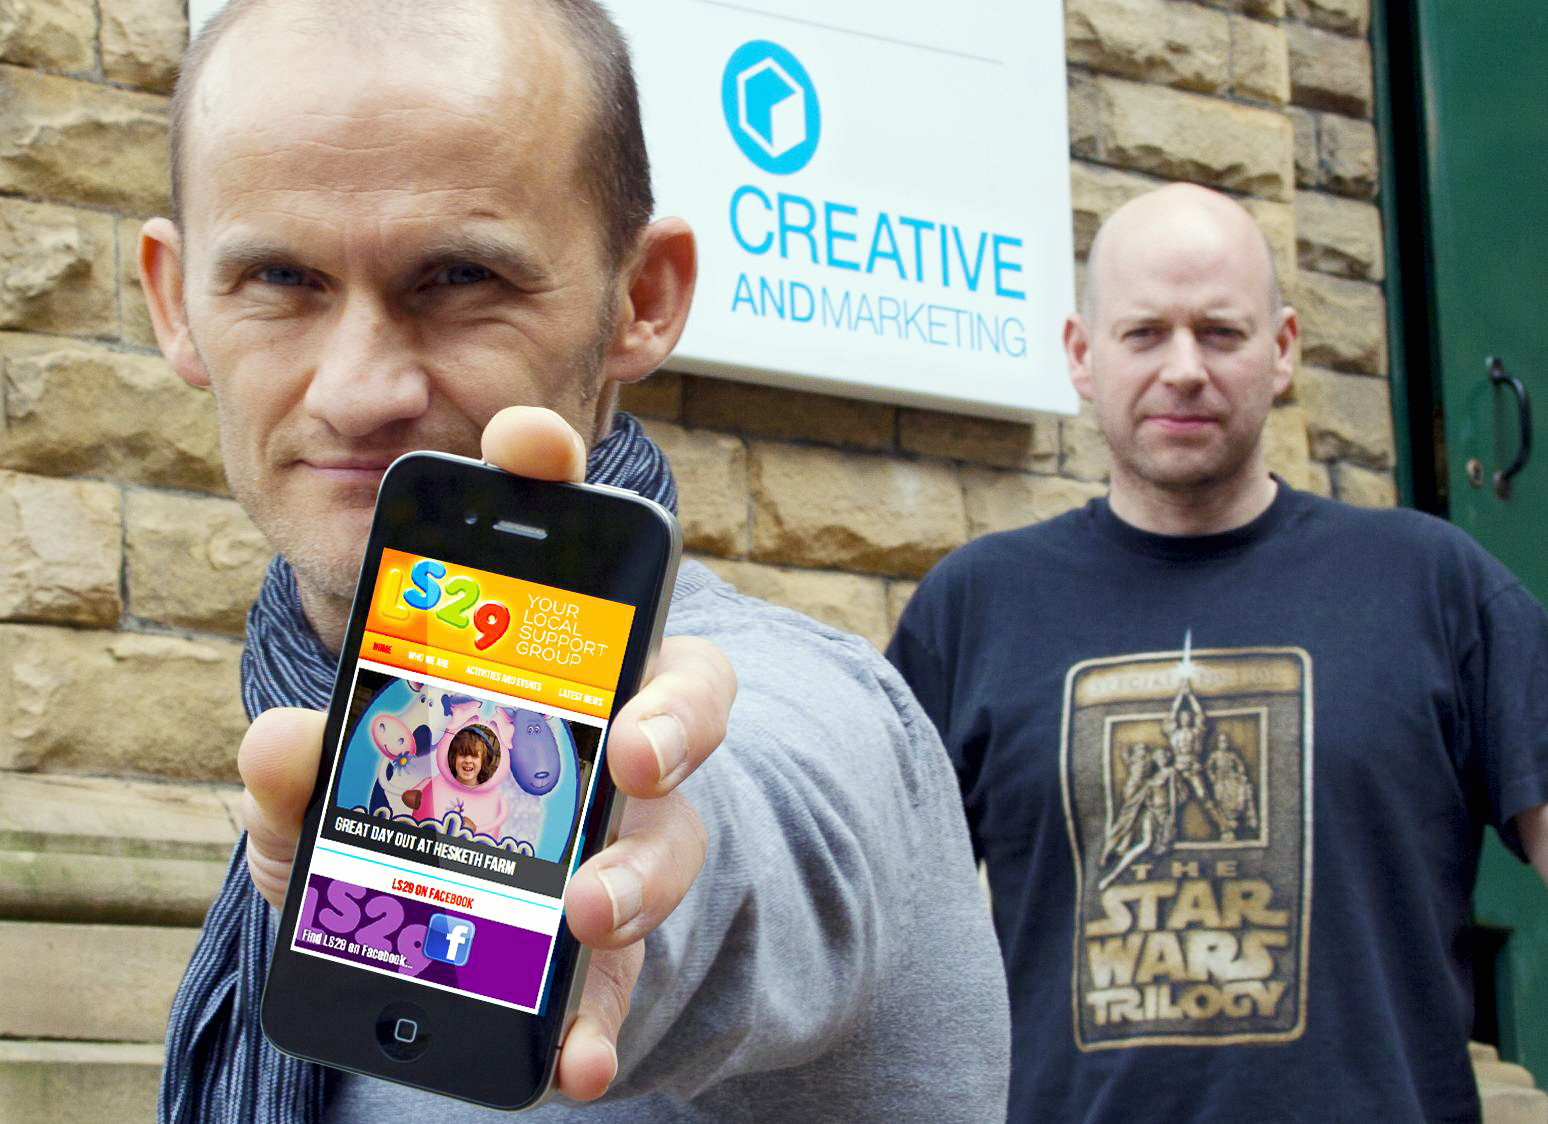 Daniel Belcher, left, and Richard Ware, founders of Creative and Marketing, who have teamed up with local community group LS29